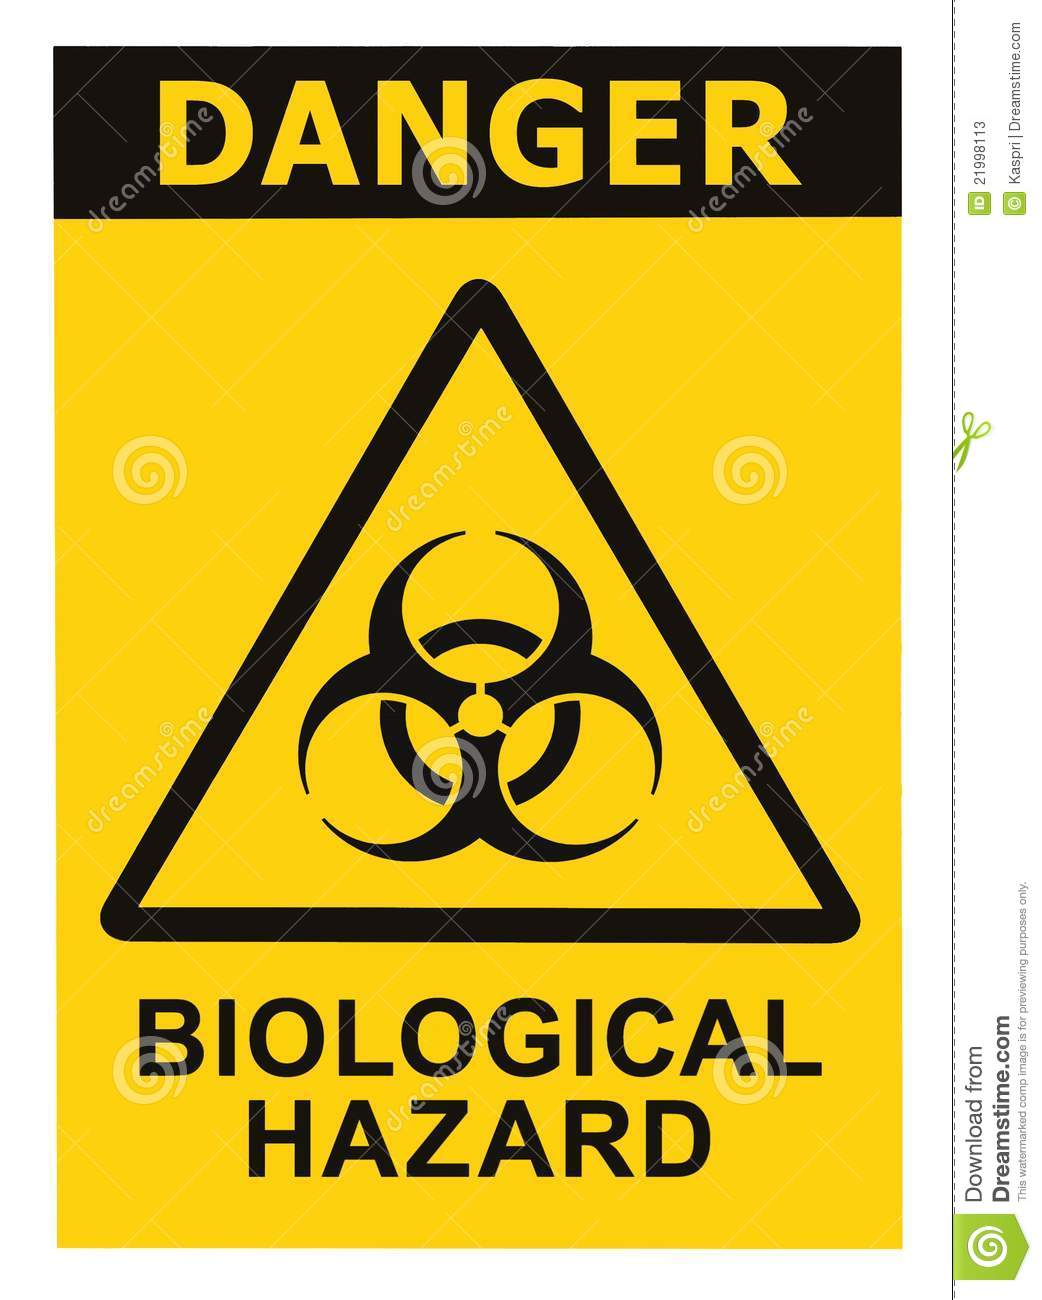 biohazard-symbol-sign-biological-threat-